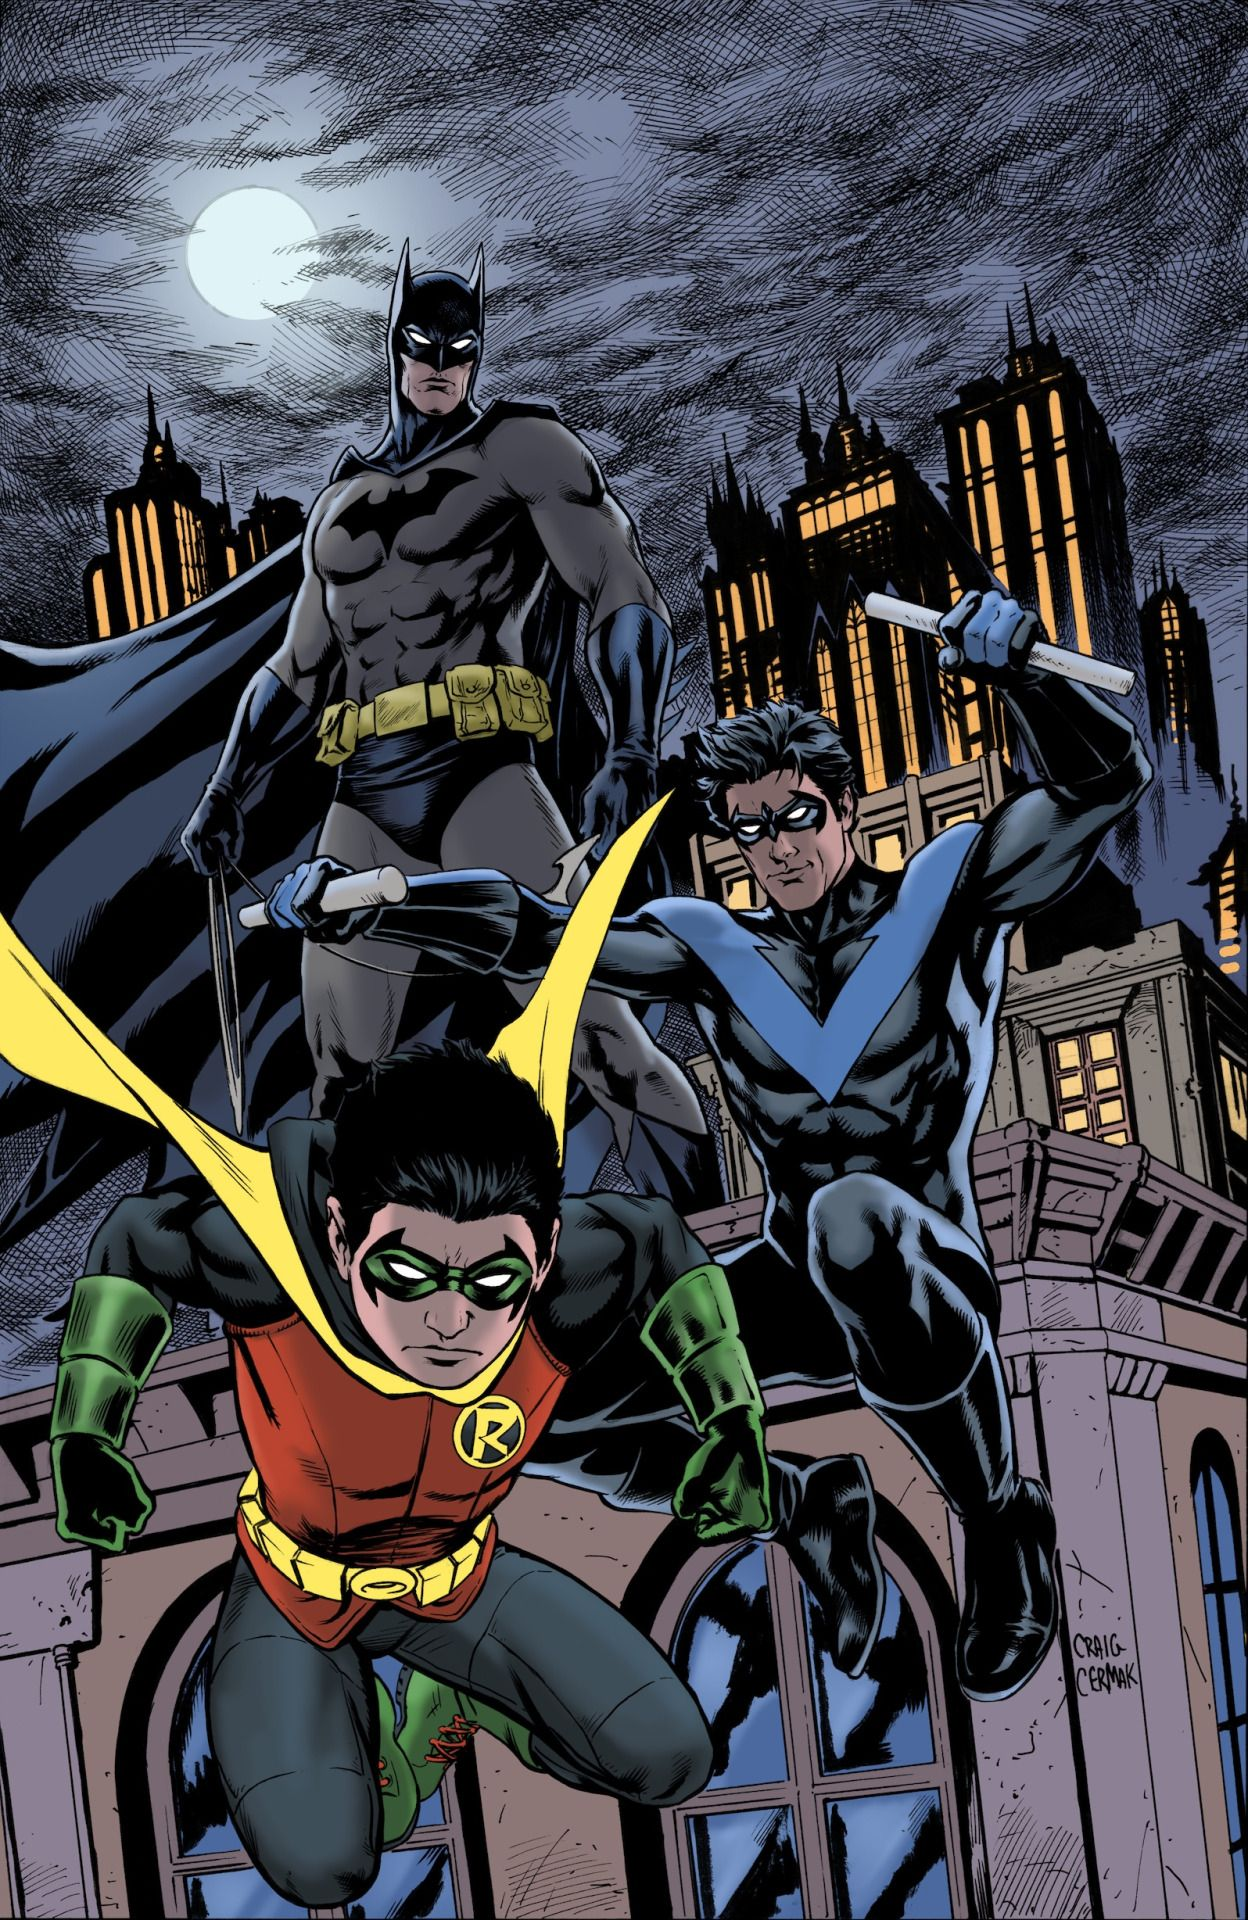 Pin by Clio Z on Sexy or Cute Dick Grayson Stuff <3 | Pinterest